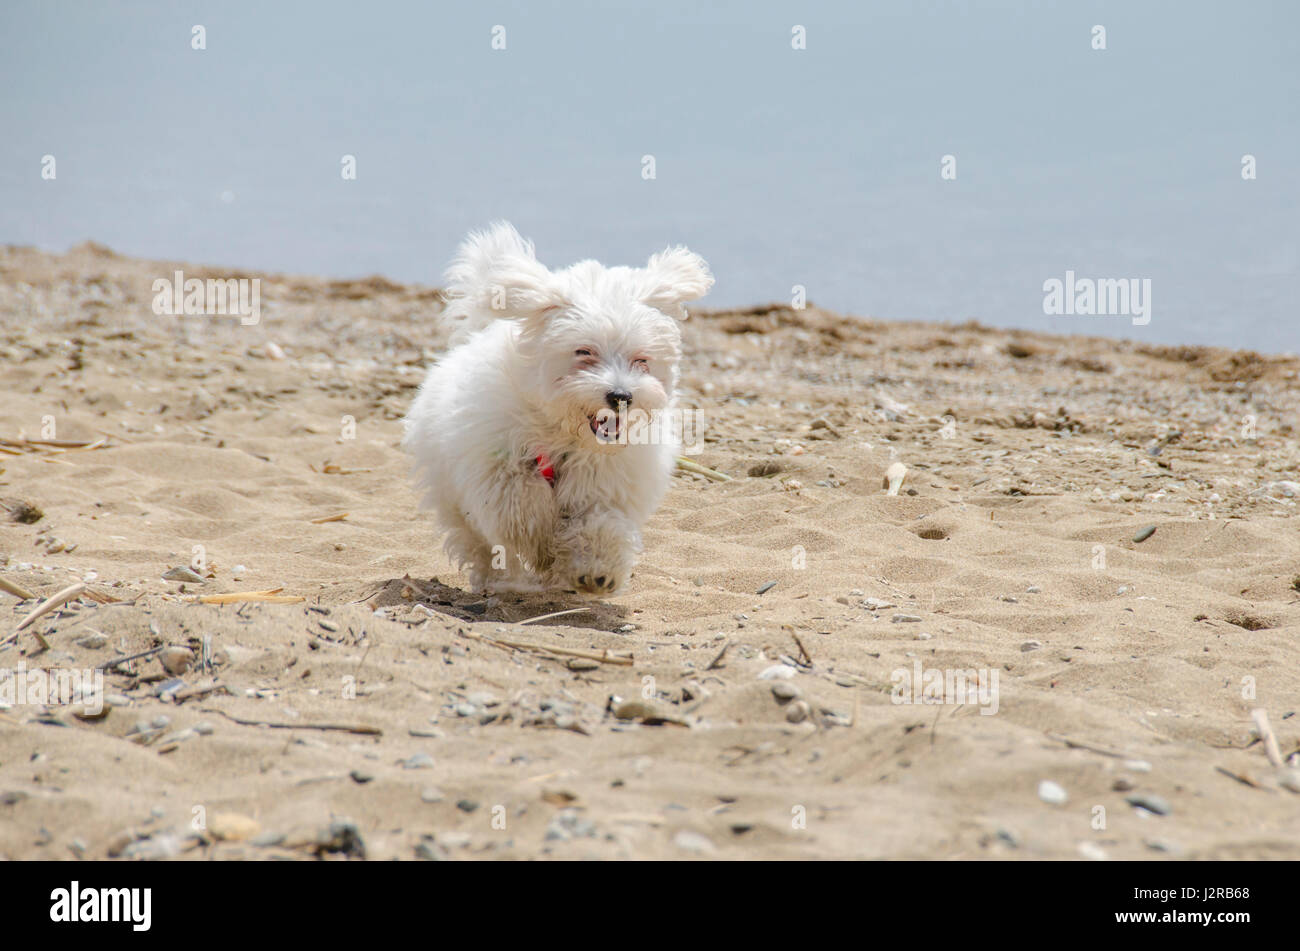 Cute dog on beach running - Maltese puppy - Stock Image